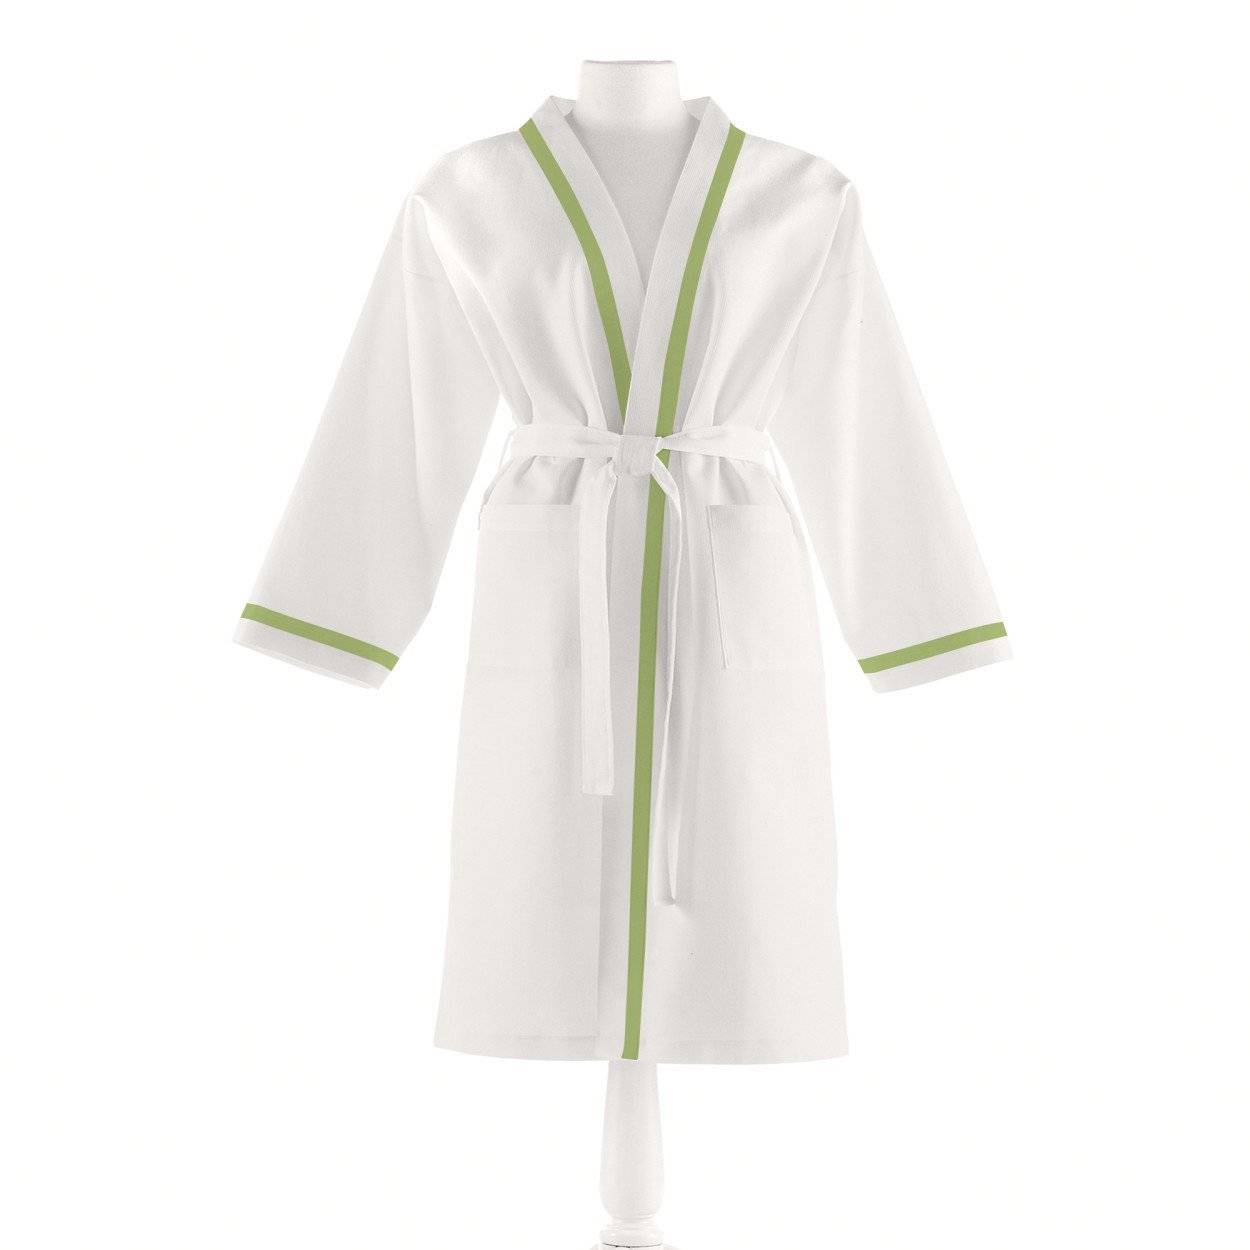 Peacock Alley Meadow Pique Bathrobe -Large/Extra Large